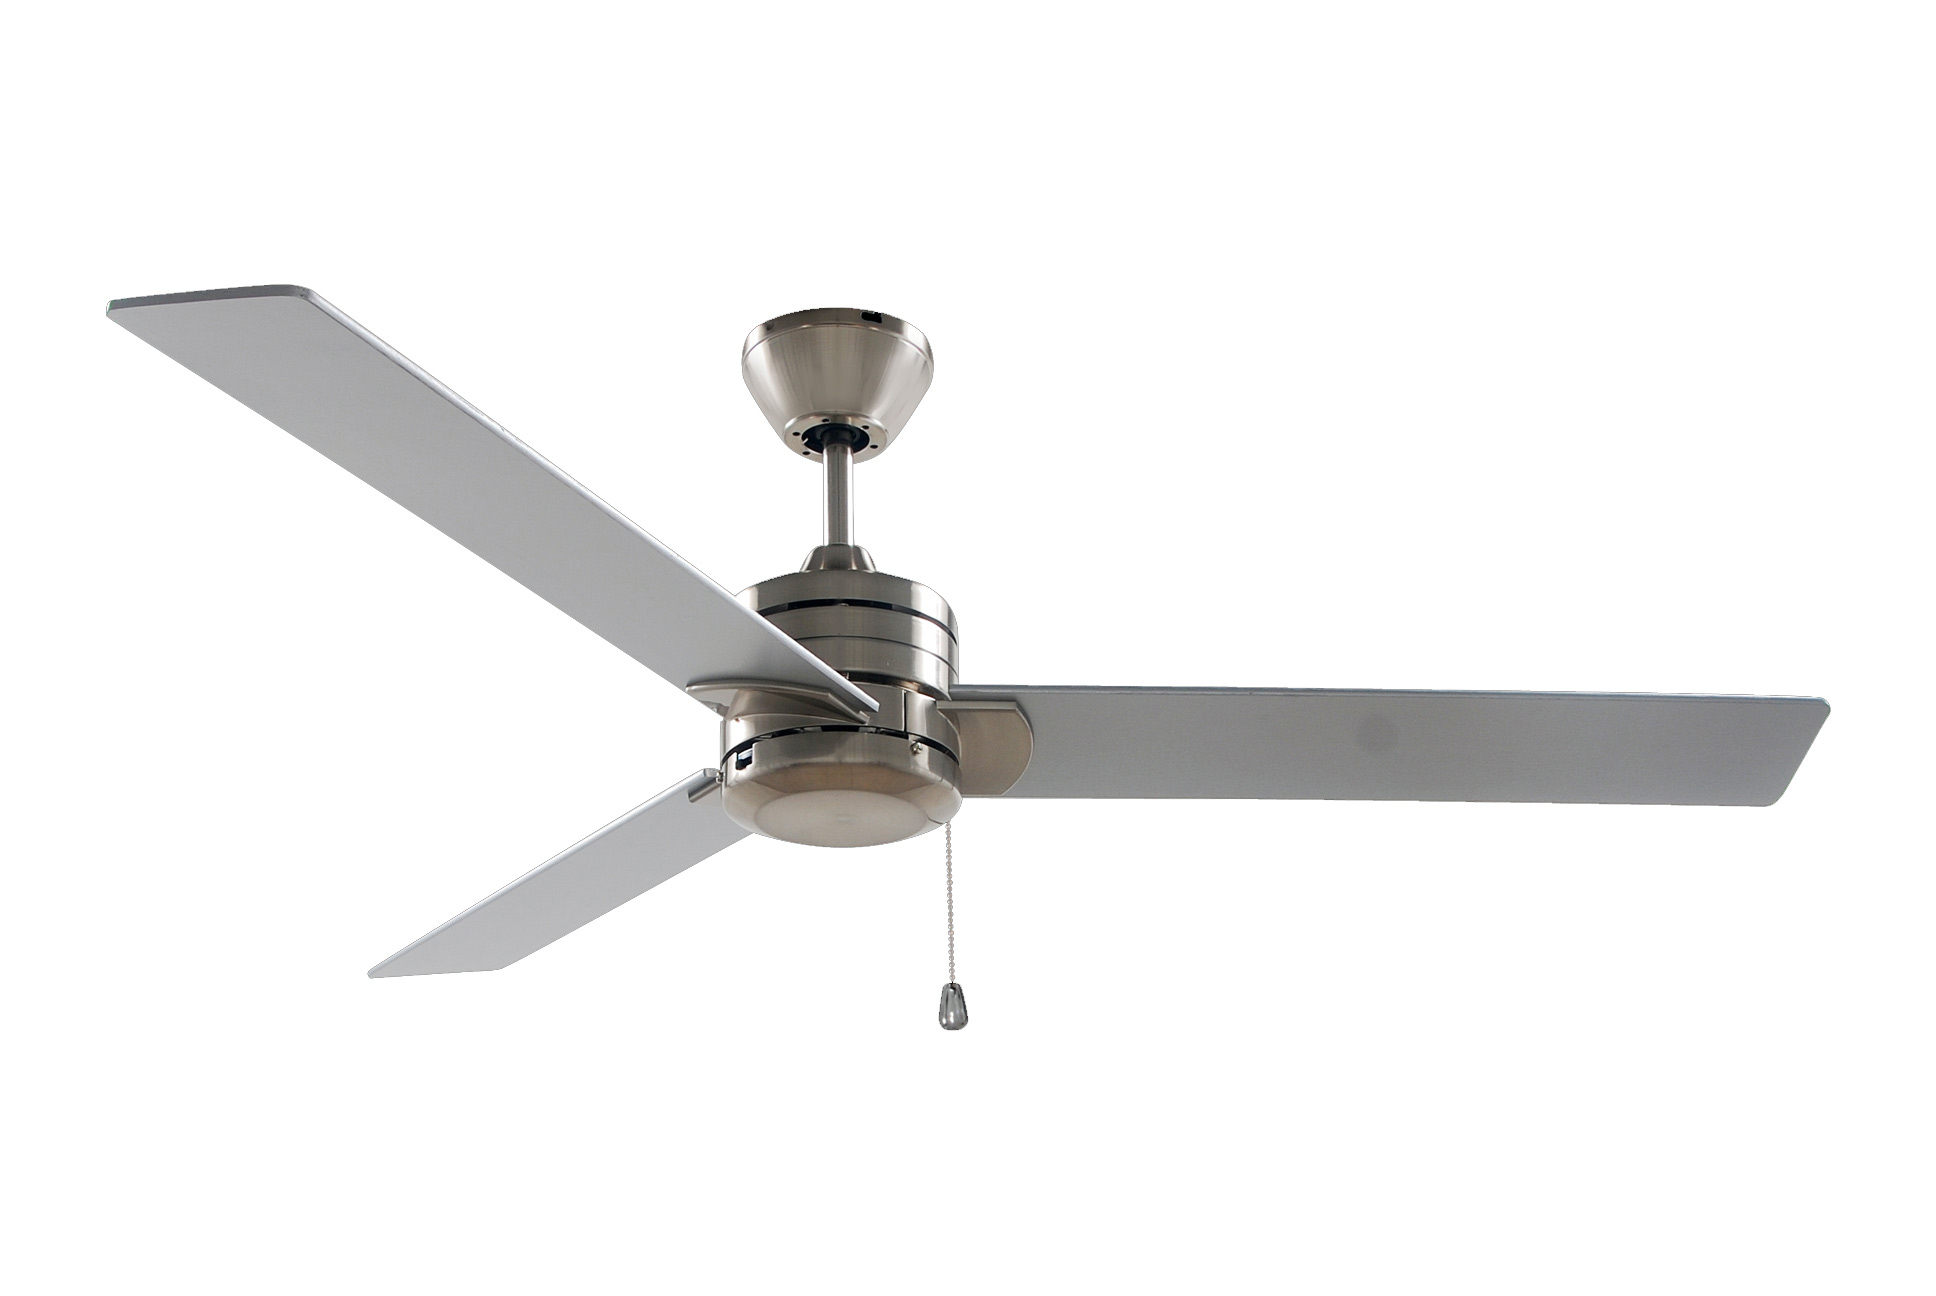 Sylaska 1.27m Blades - Reversible Ceiling Fan - Brushed Nickel